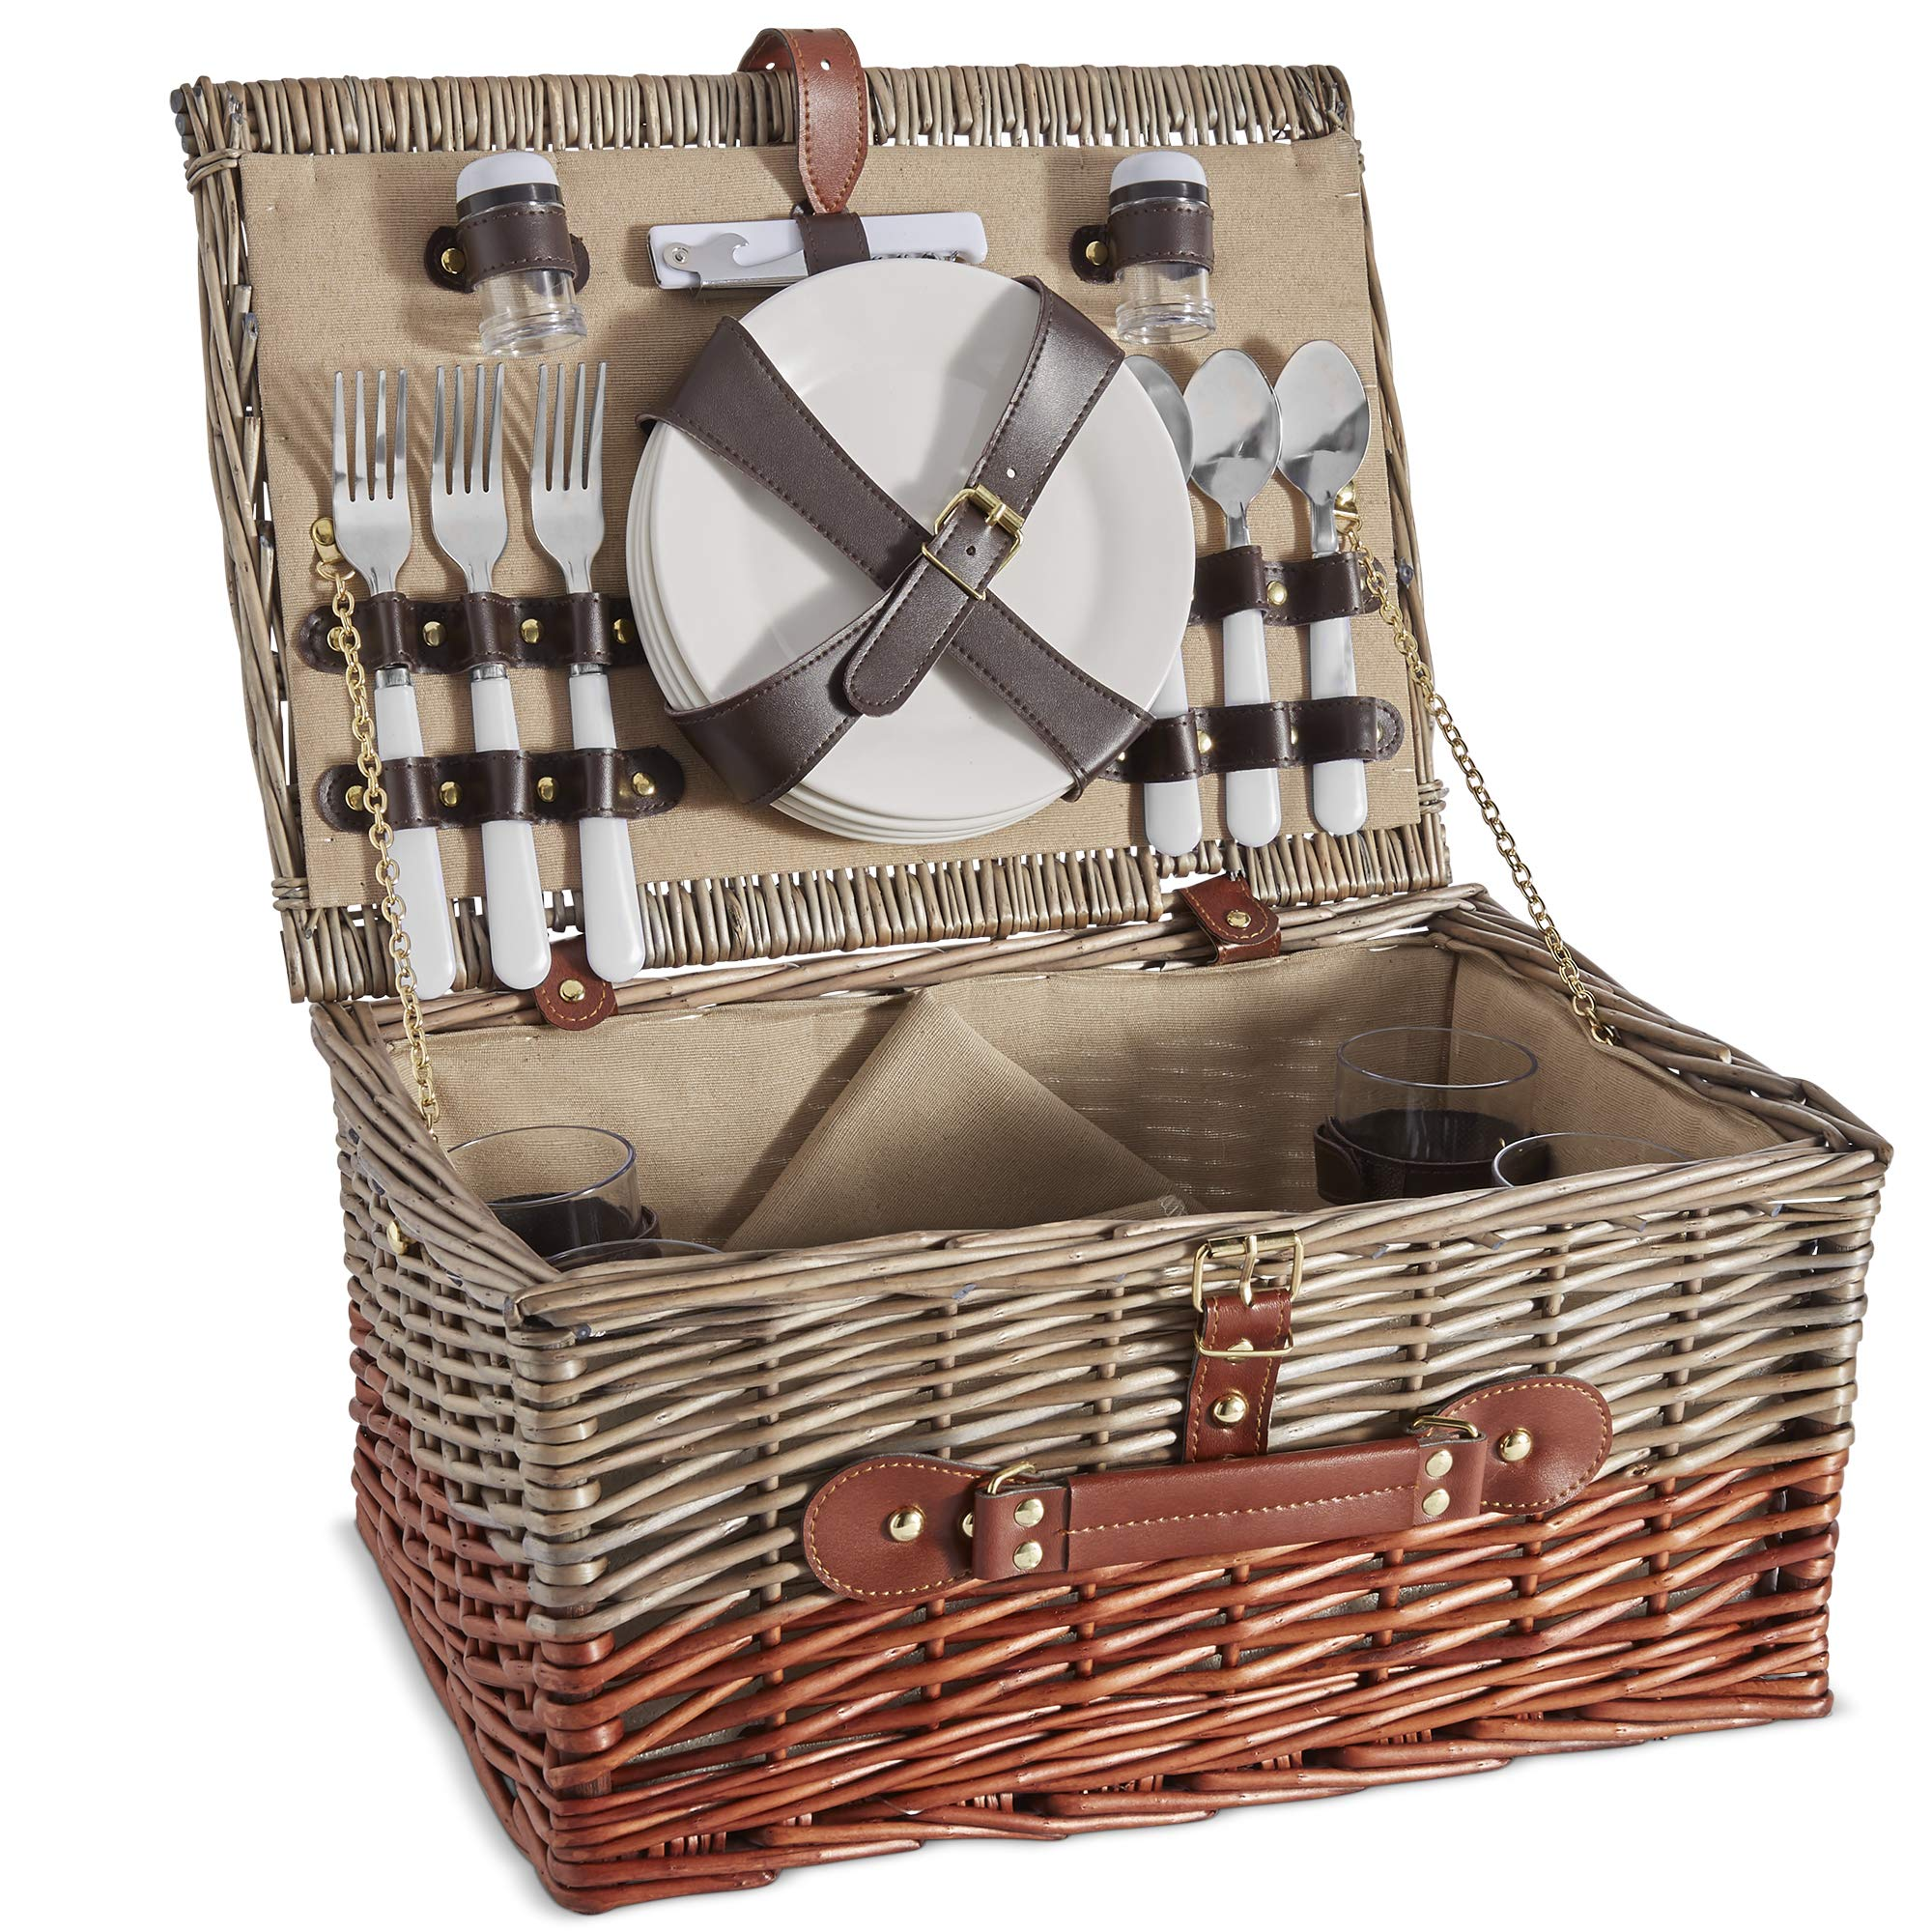 VonShef 4 Person Wicker Picnic Basket Set - Includes Flatware/Tableware Inc. Dinner Plates, Wine Glasses, Cotton Napkins, Cutlery - Perfect for Outdoor Family Fun by VonShef